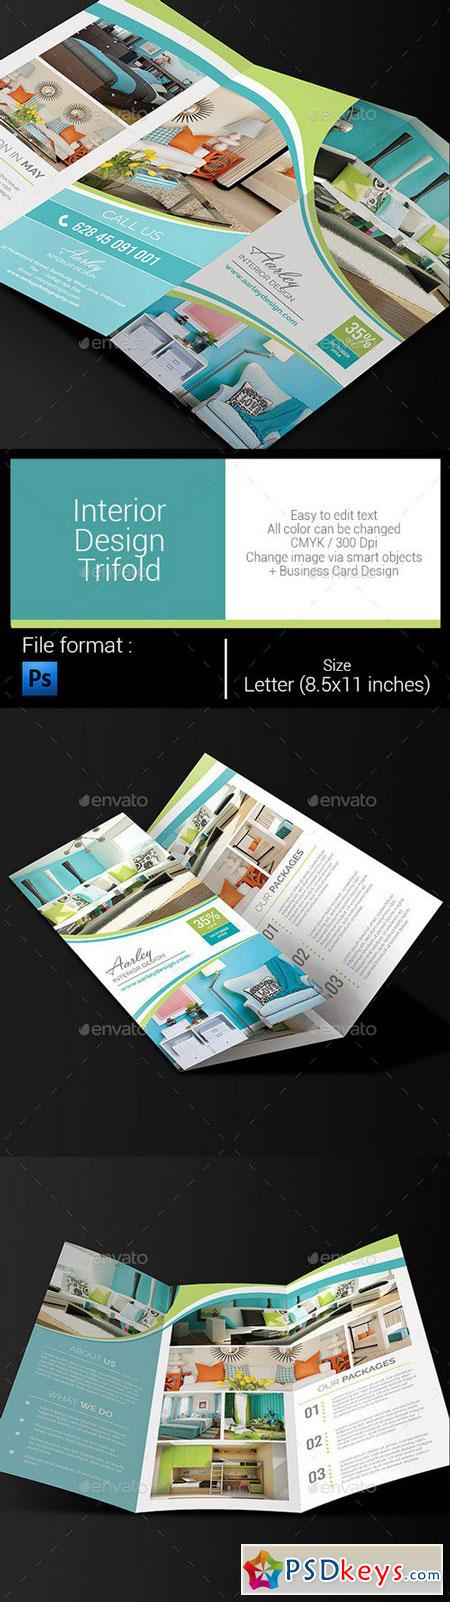 Interior Design Trifold 10688353